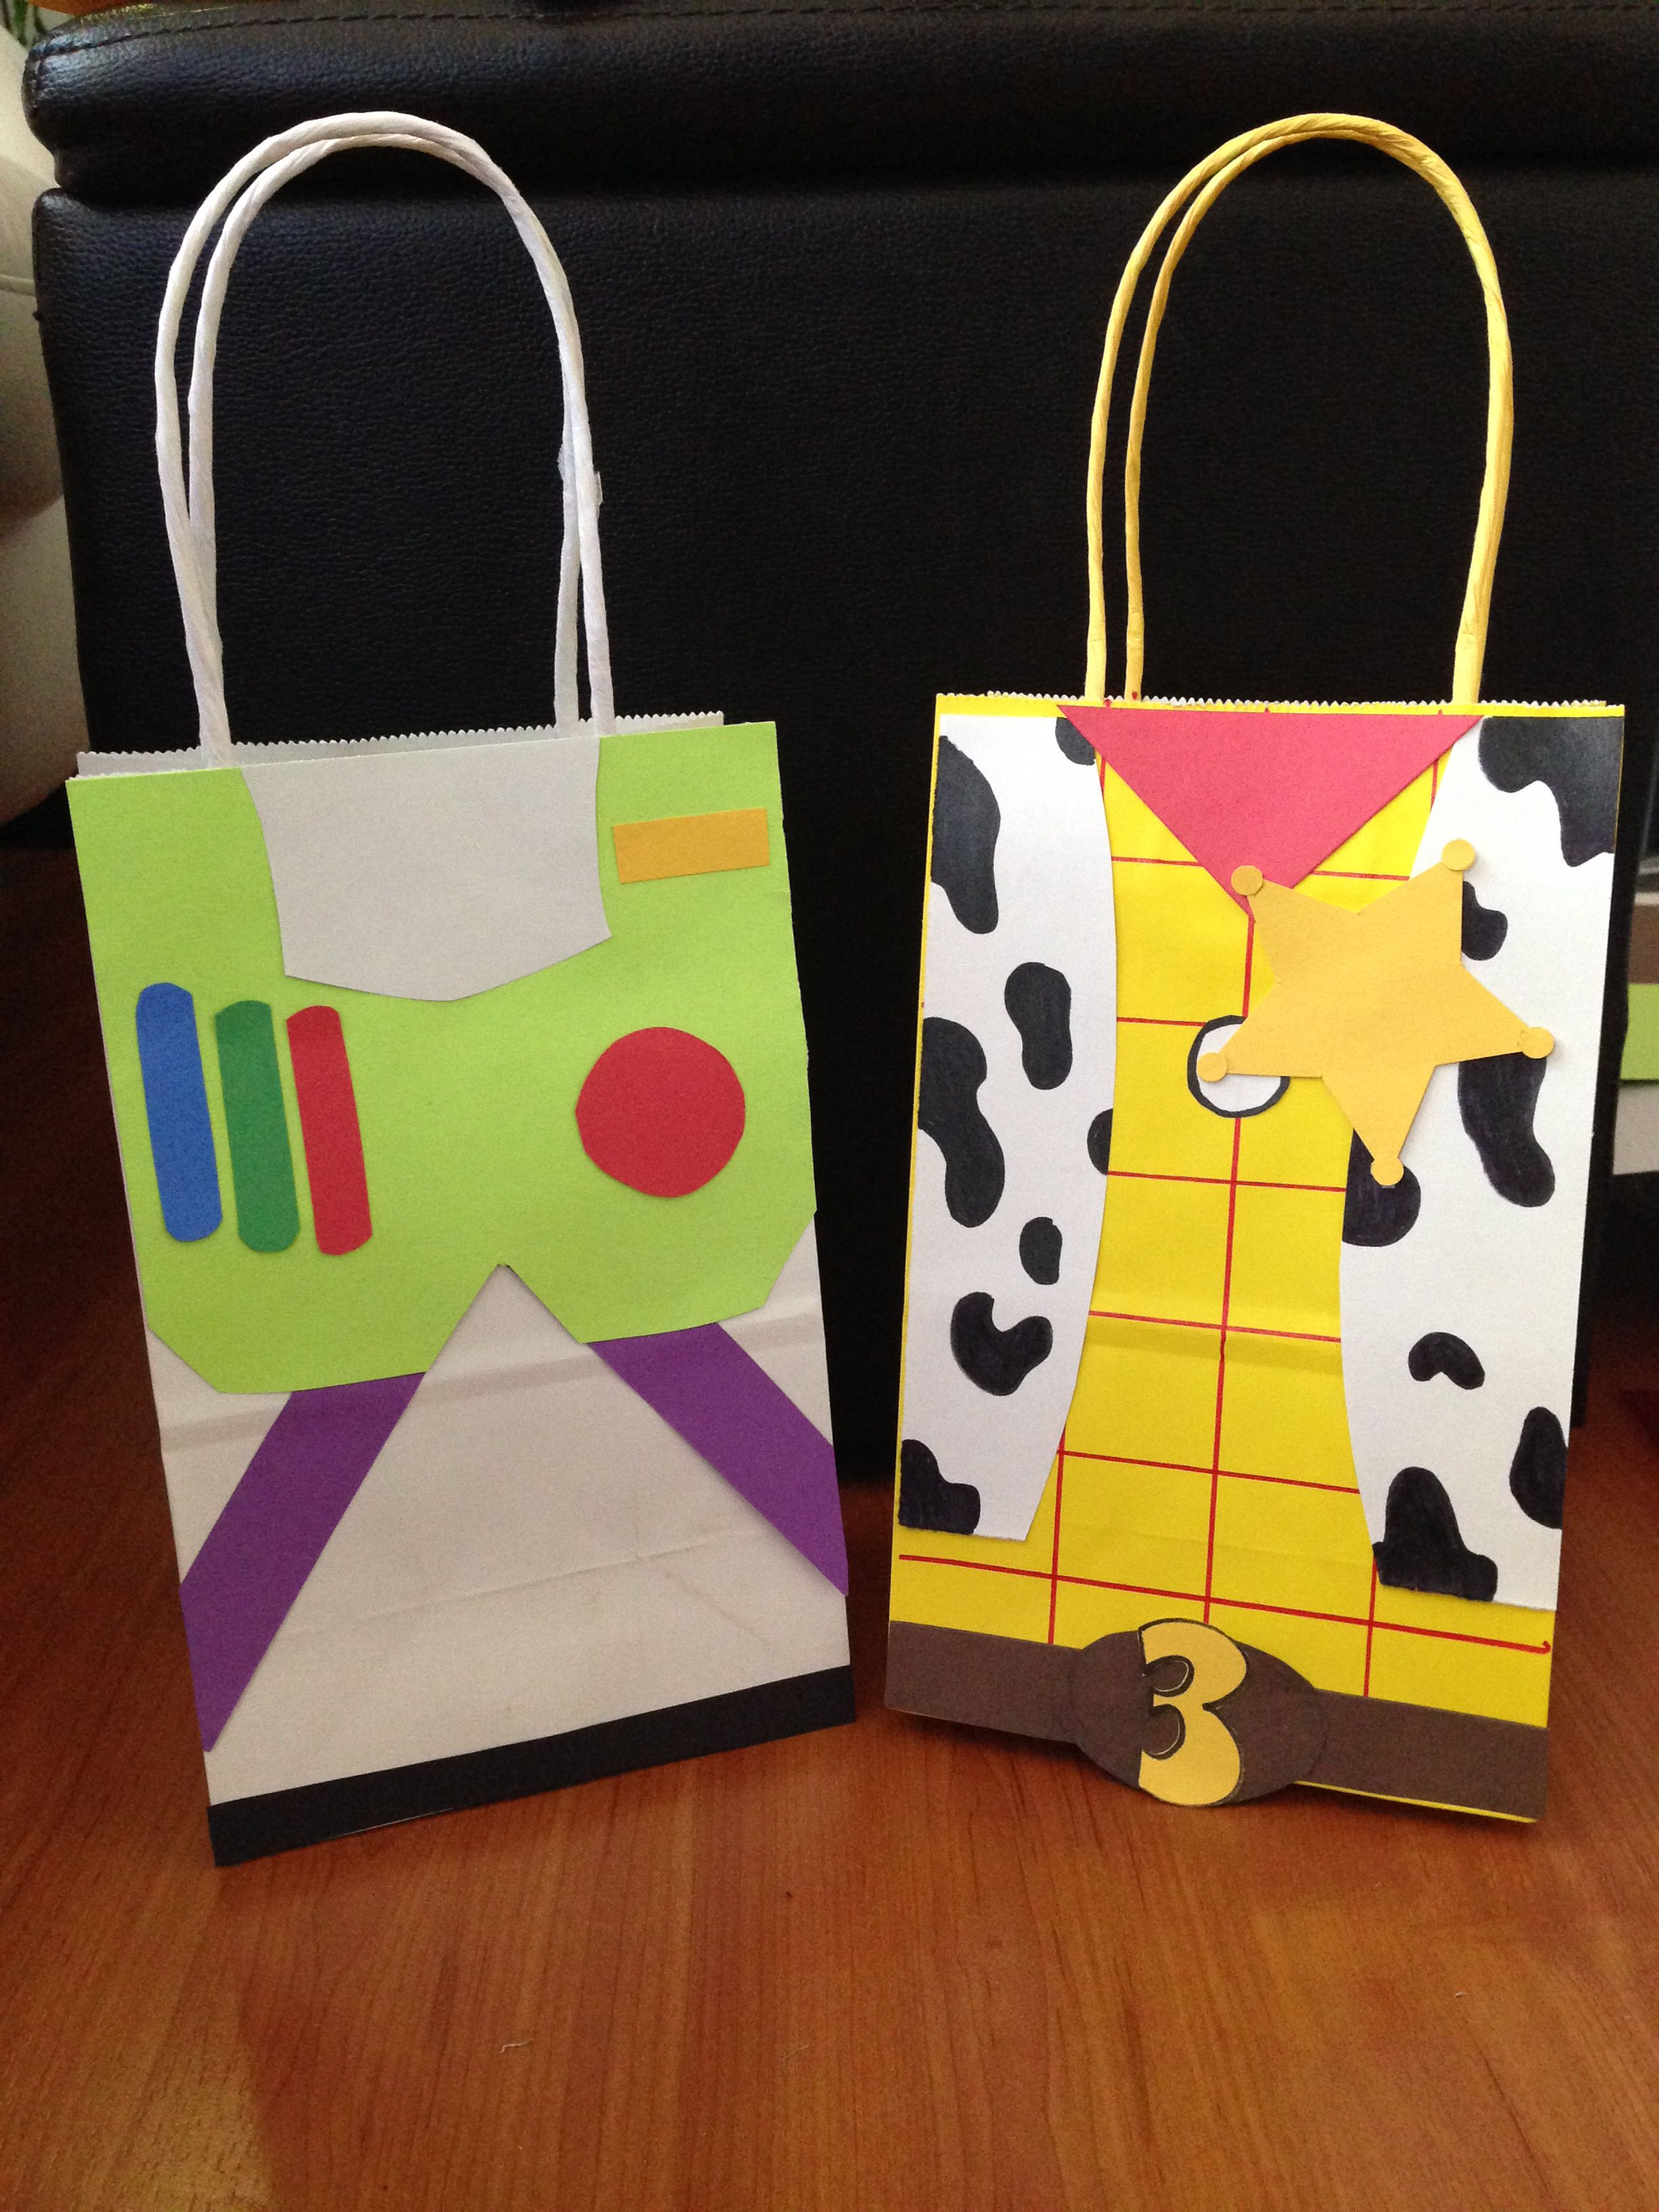 DIY Toy Story Goodie Bags for sale! Visit etsy.com/shop/xEverlastingMemories to place your order,